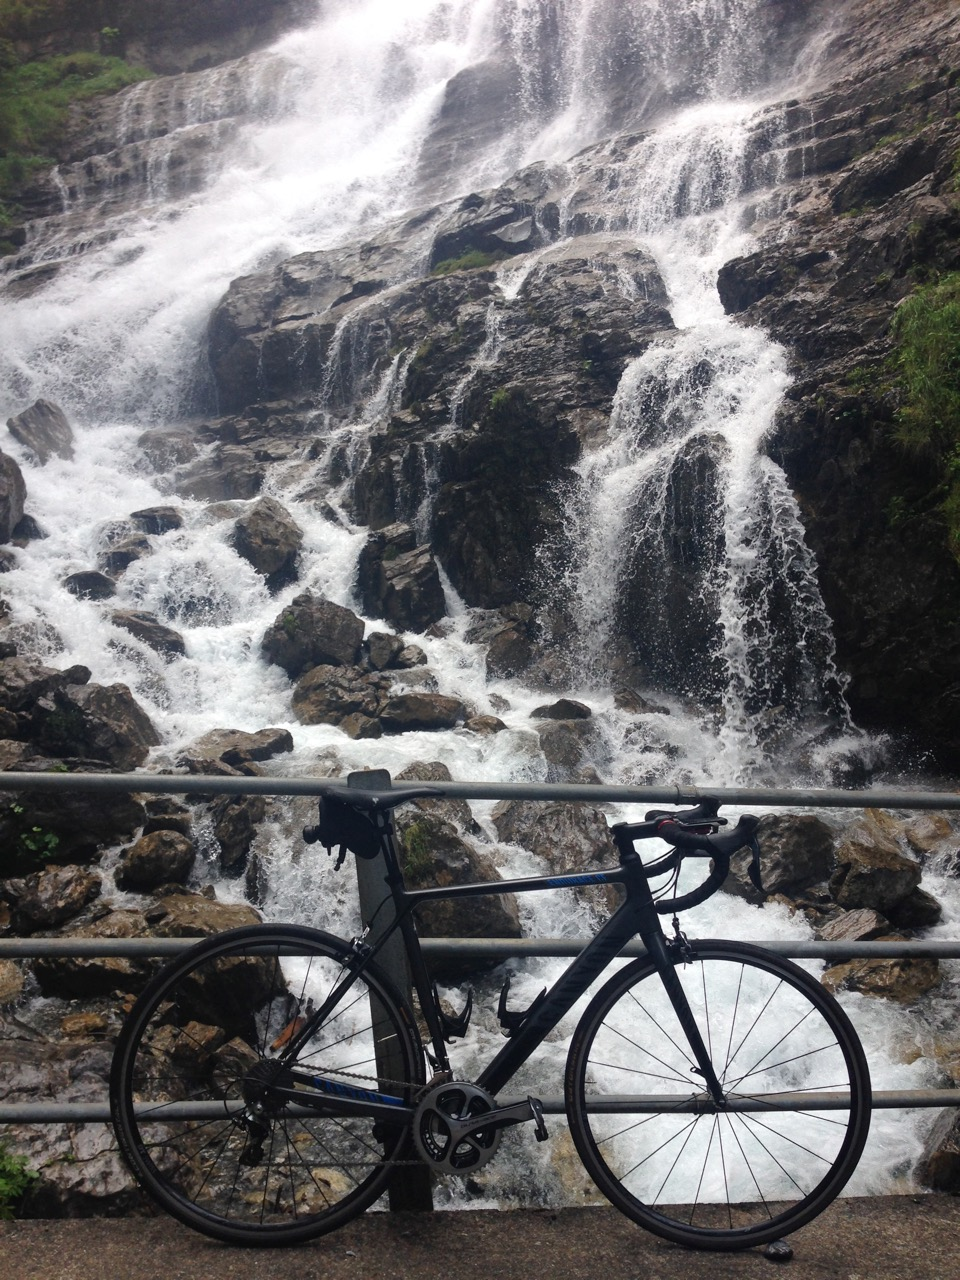 Picture of waterfall and bike